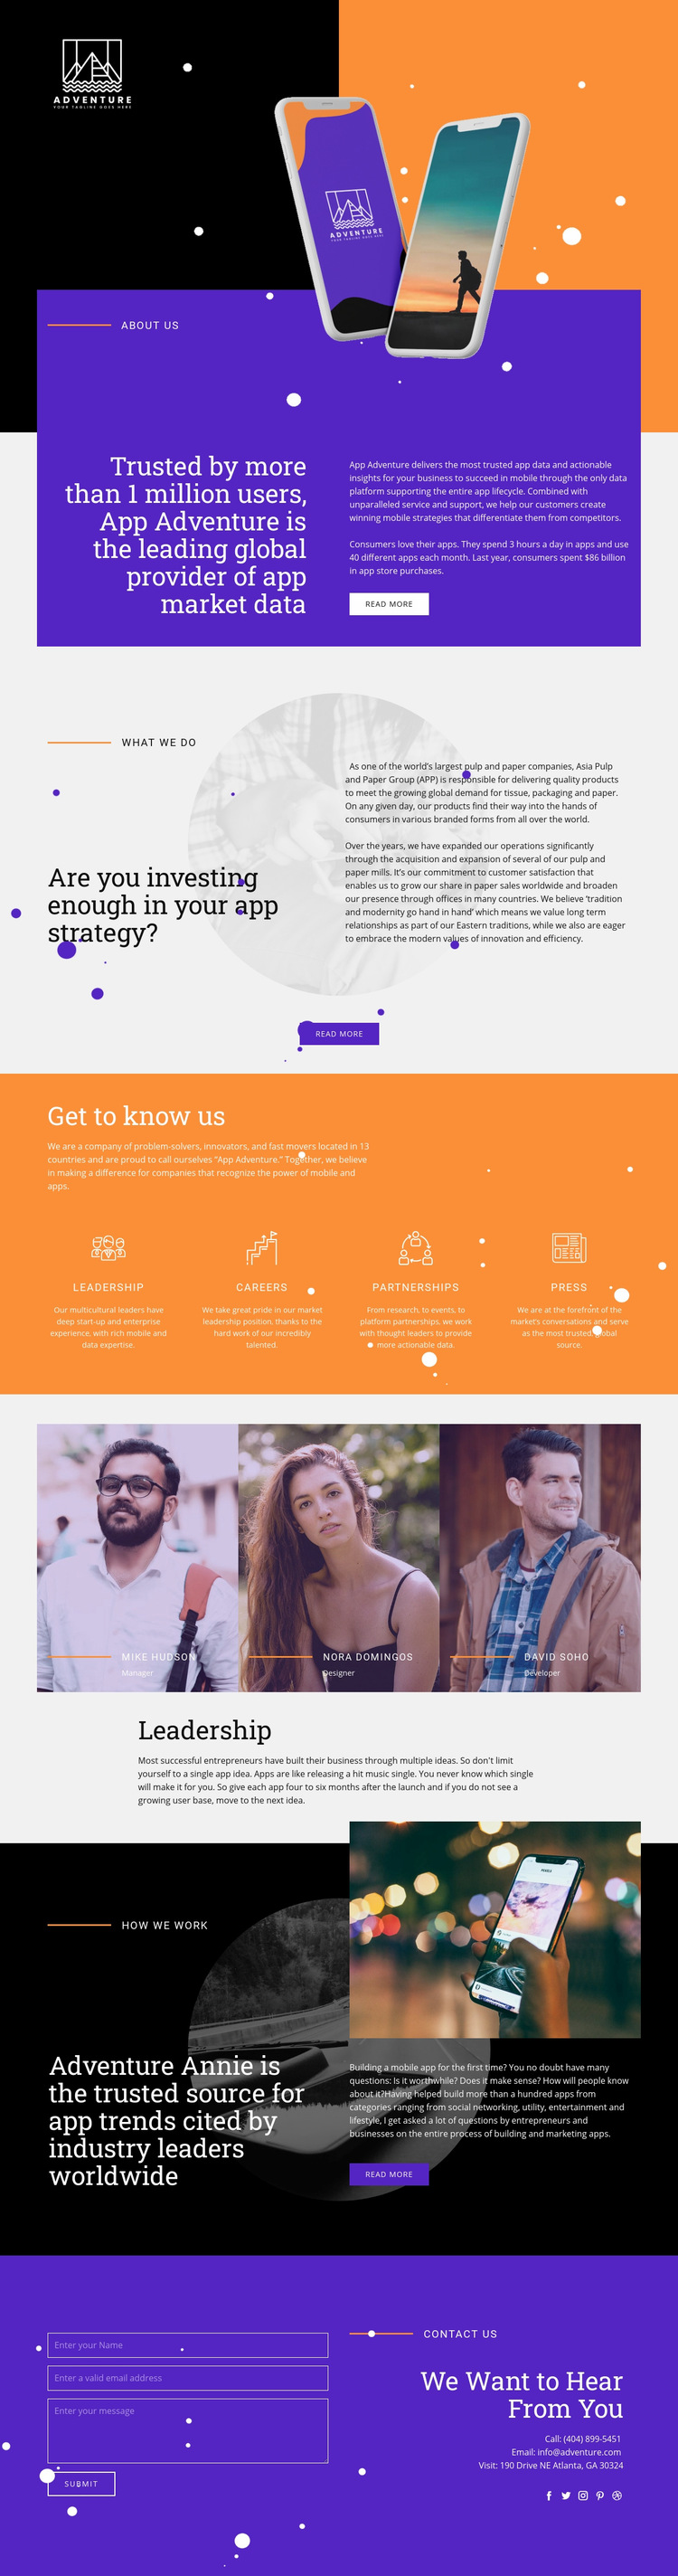 Travel App Web Page Design